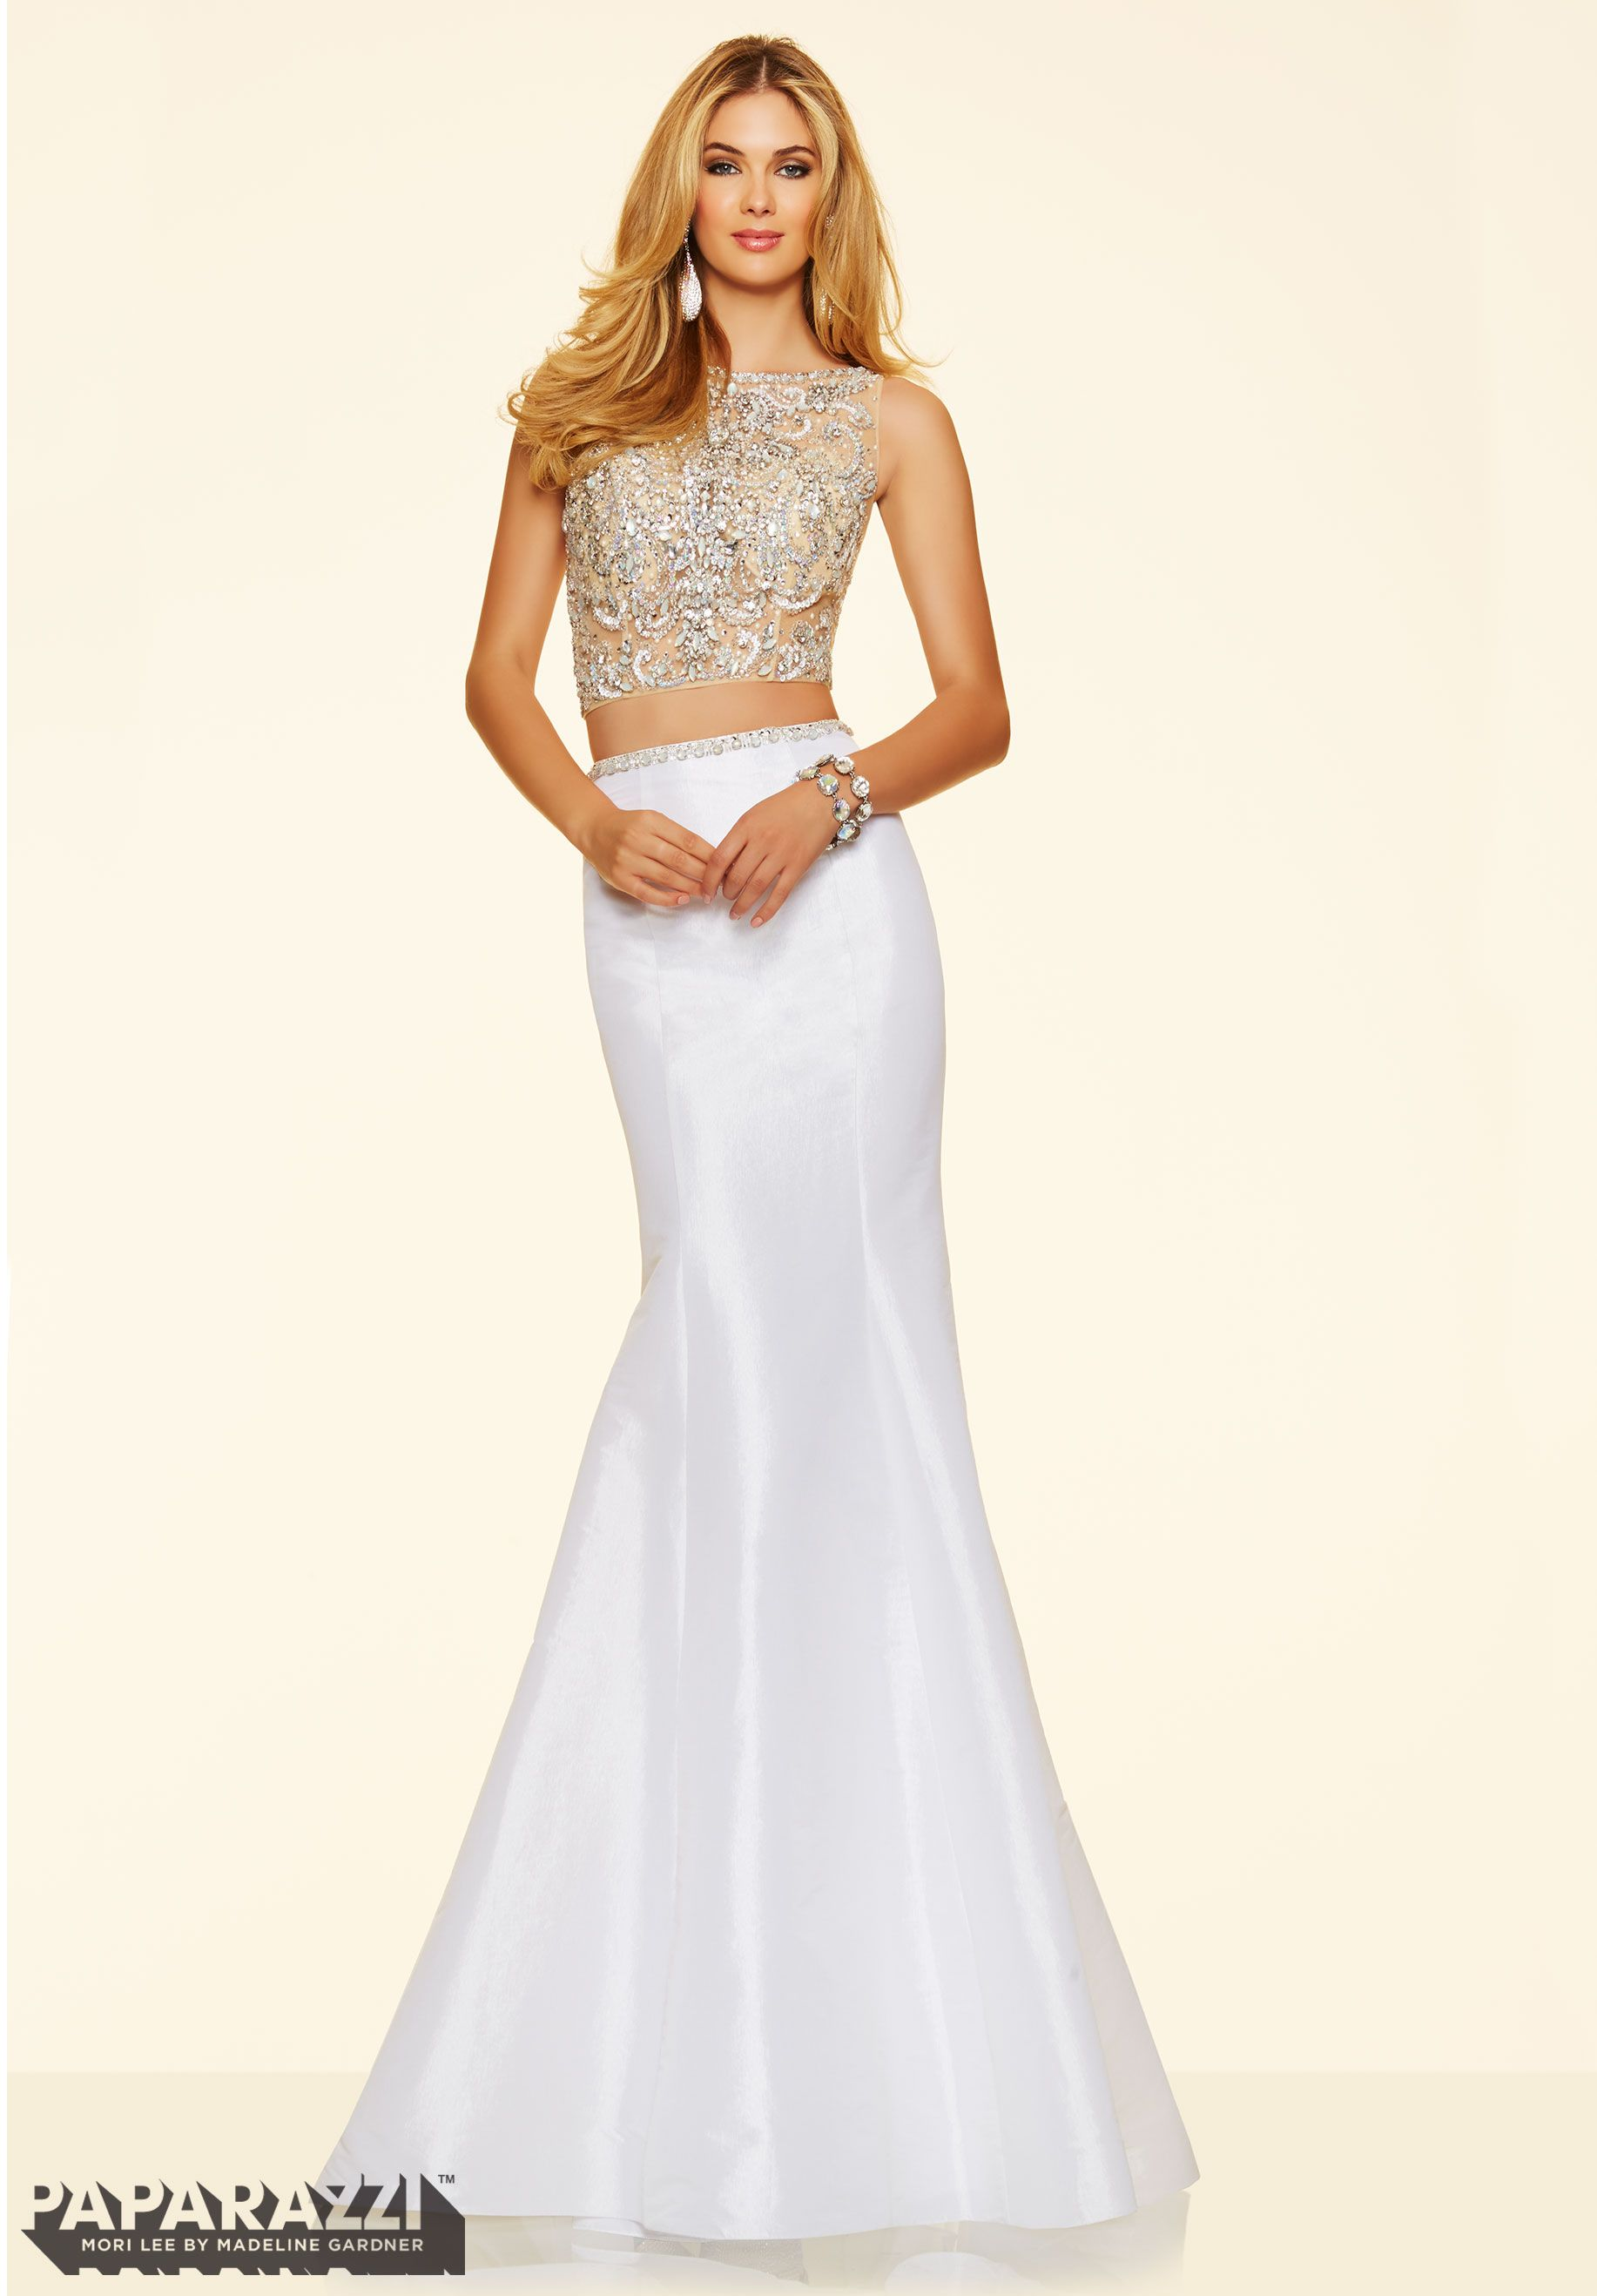 Prom Dresses by Paparazzi Prom - Dress Style 98113   PROM ...